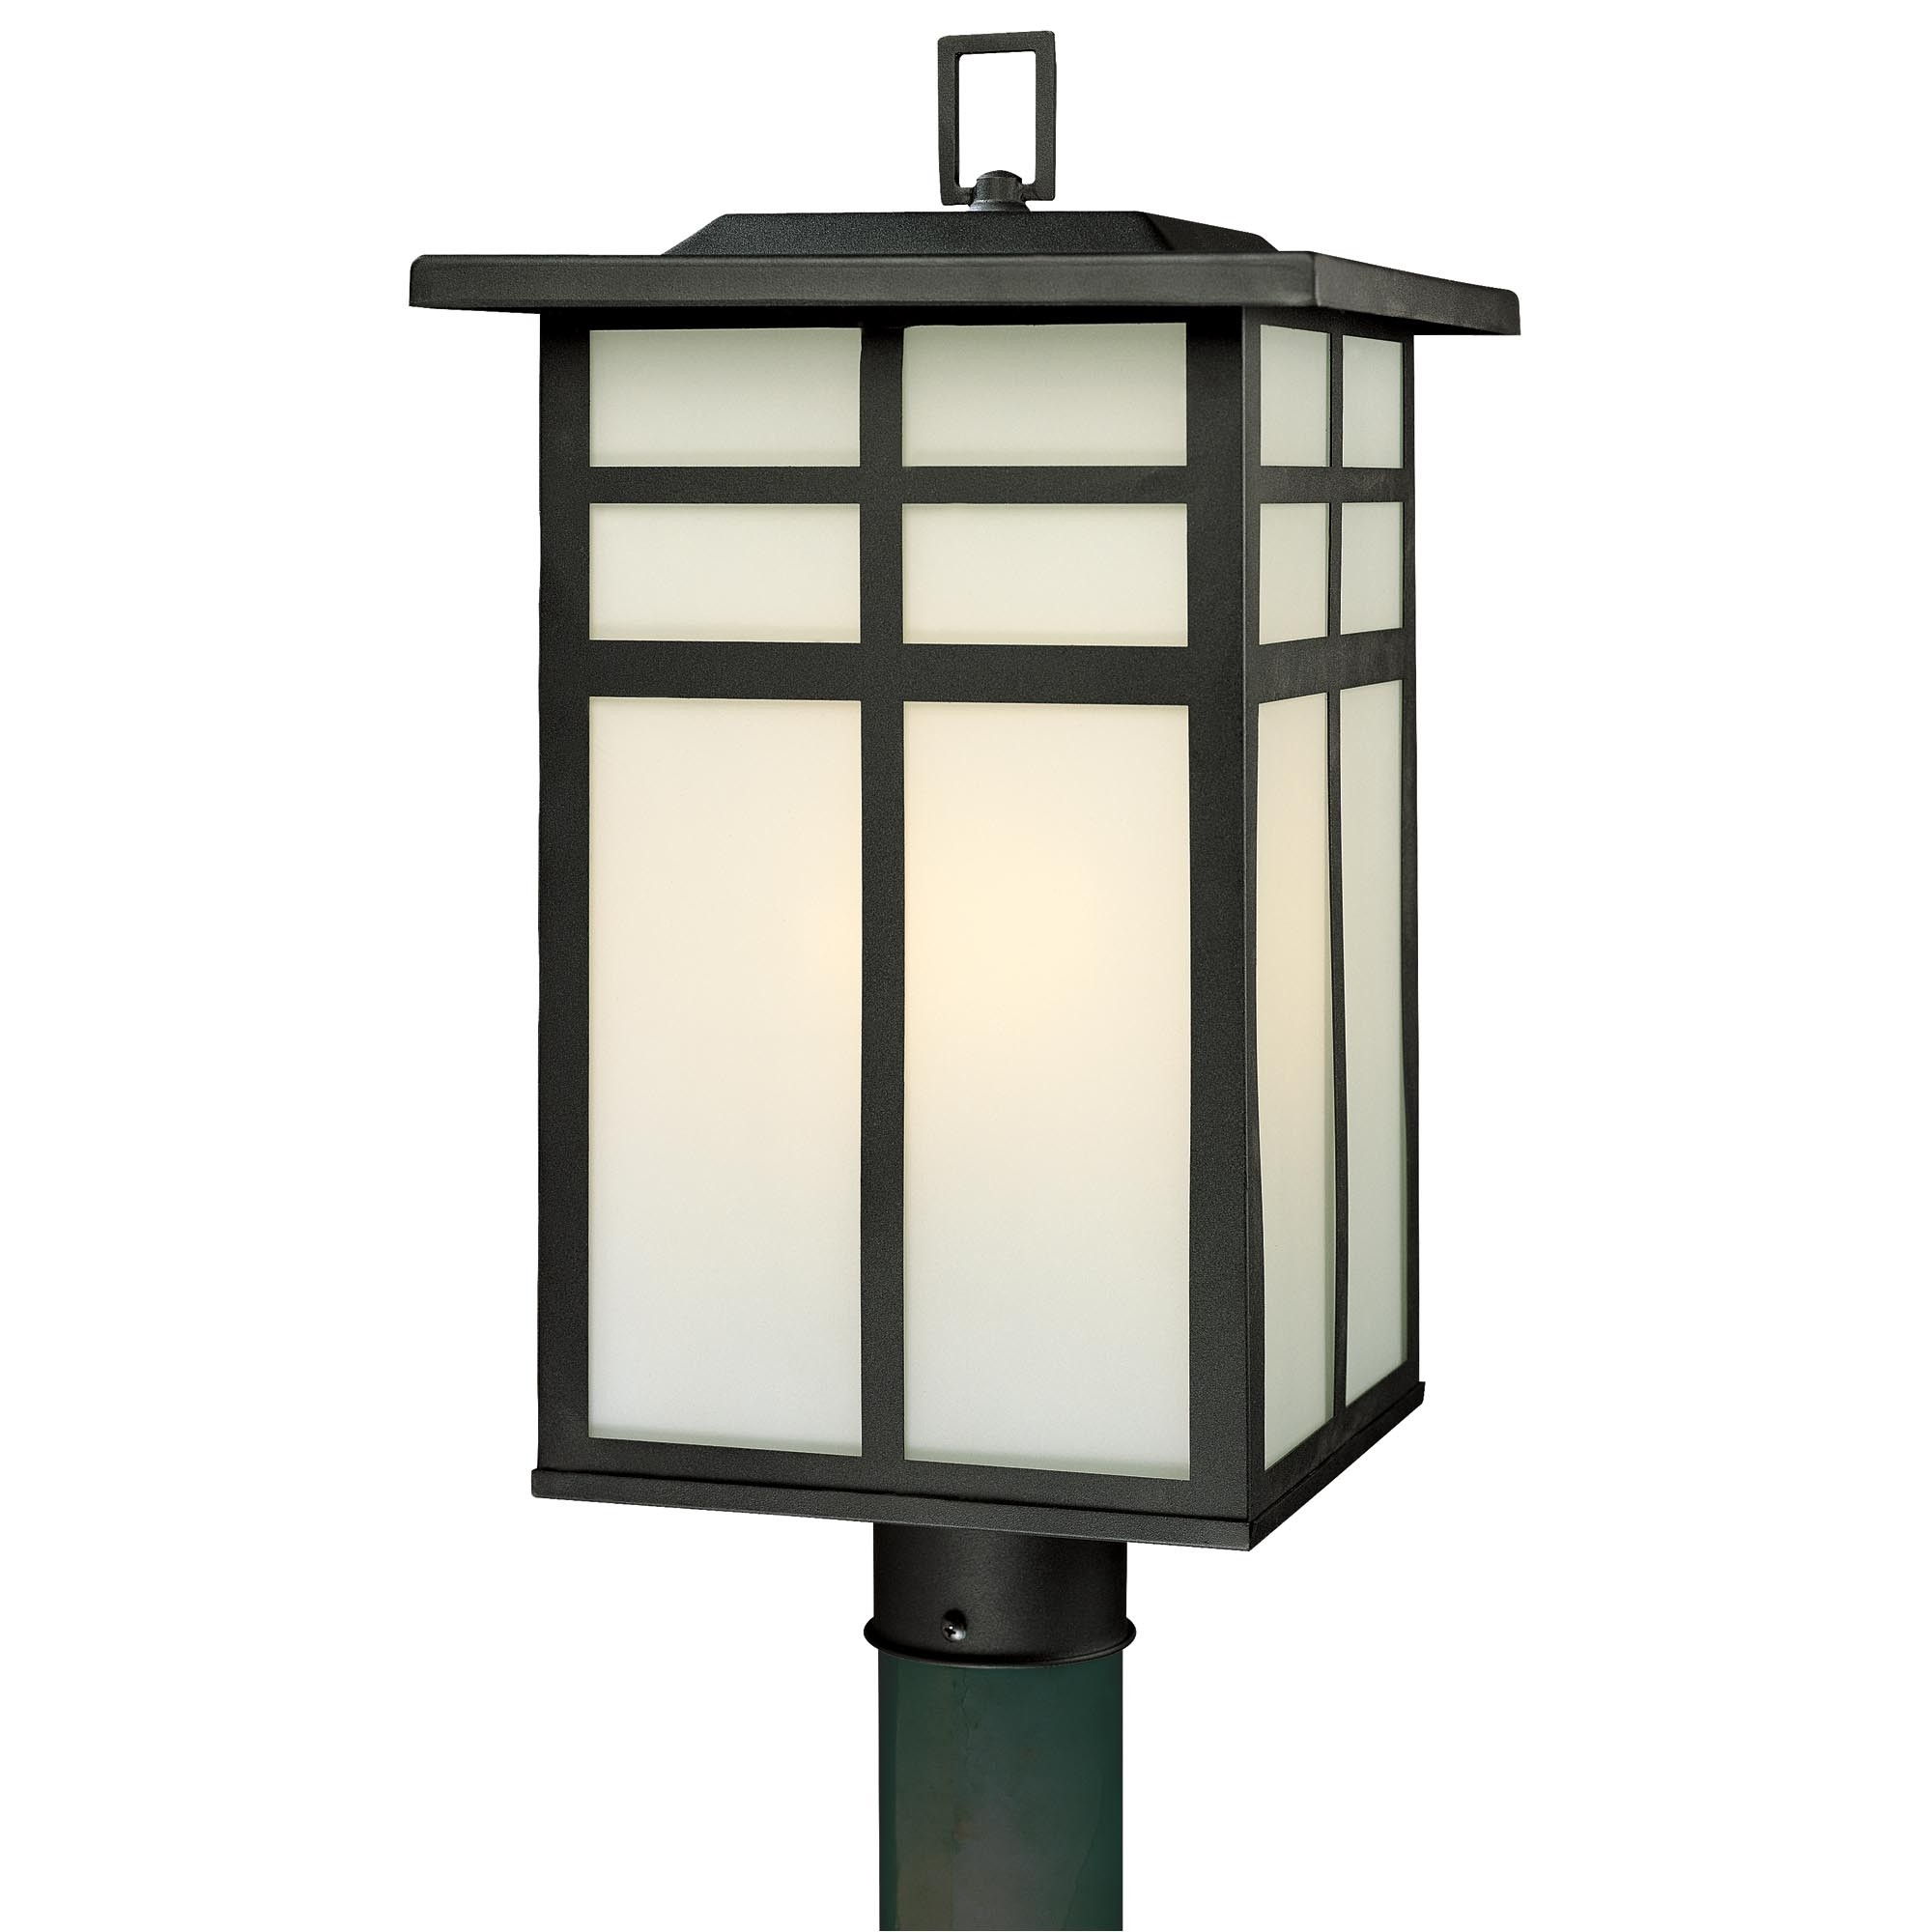 Lantern Post Light Outdoor | Sevenstonesinc throughout Outdoor Lanterns On Post (Image 8 of 20)